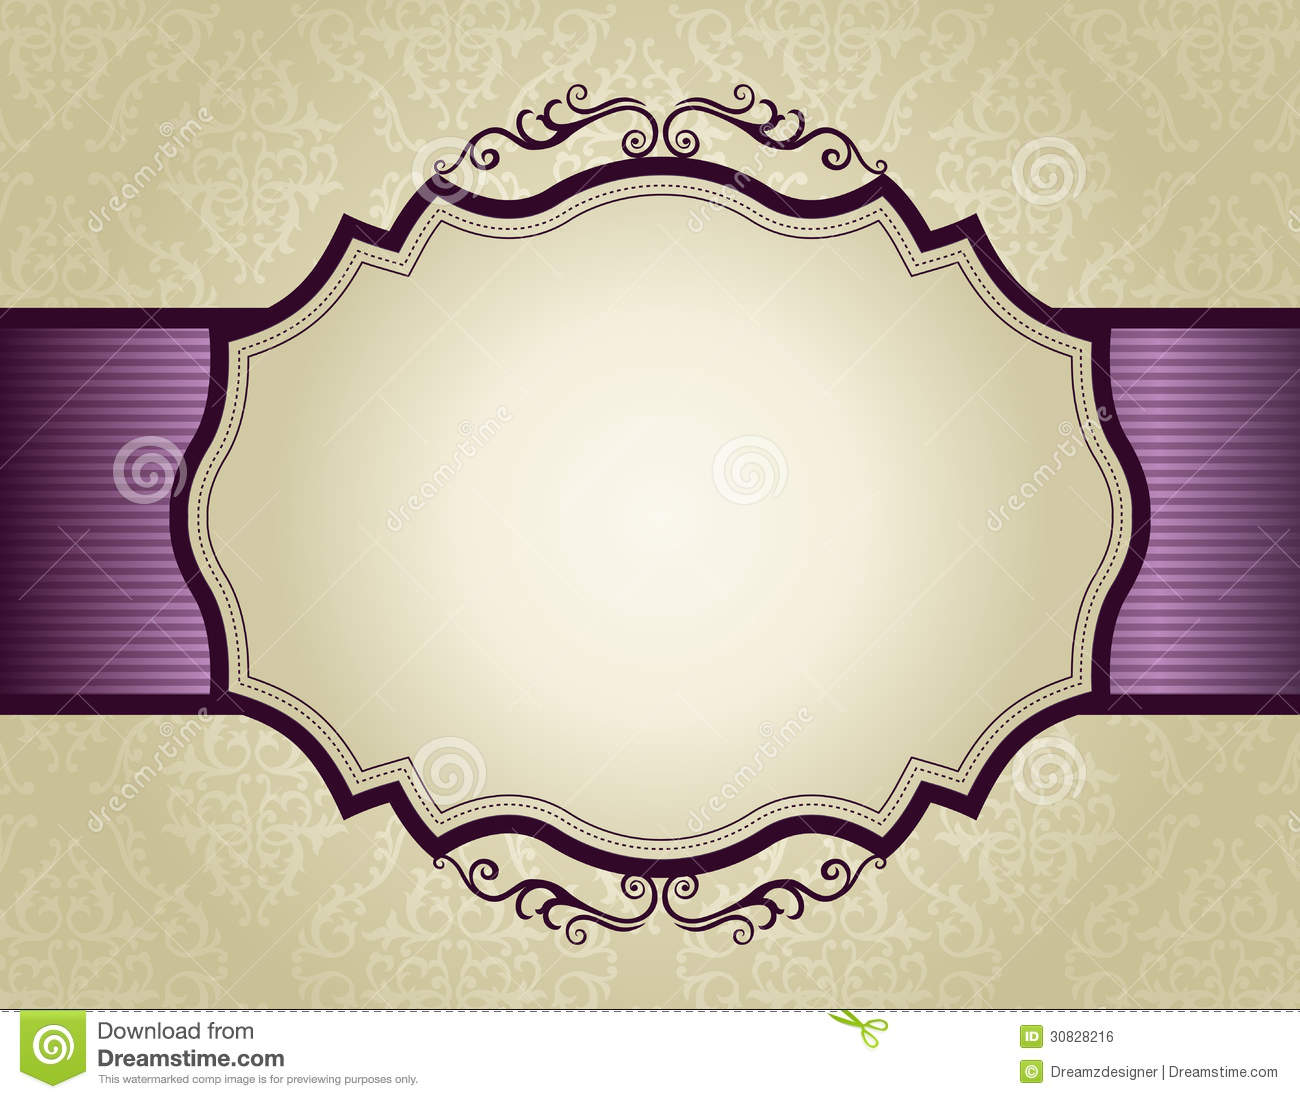 Download Invitation Background With Ornamental Border Stock Vector    Illustration Of Elegance, Frame: 30828216